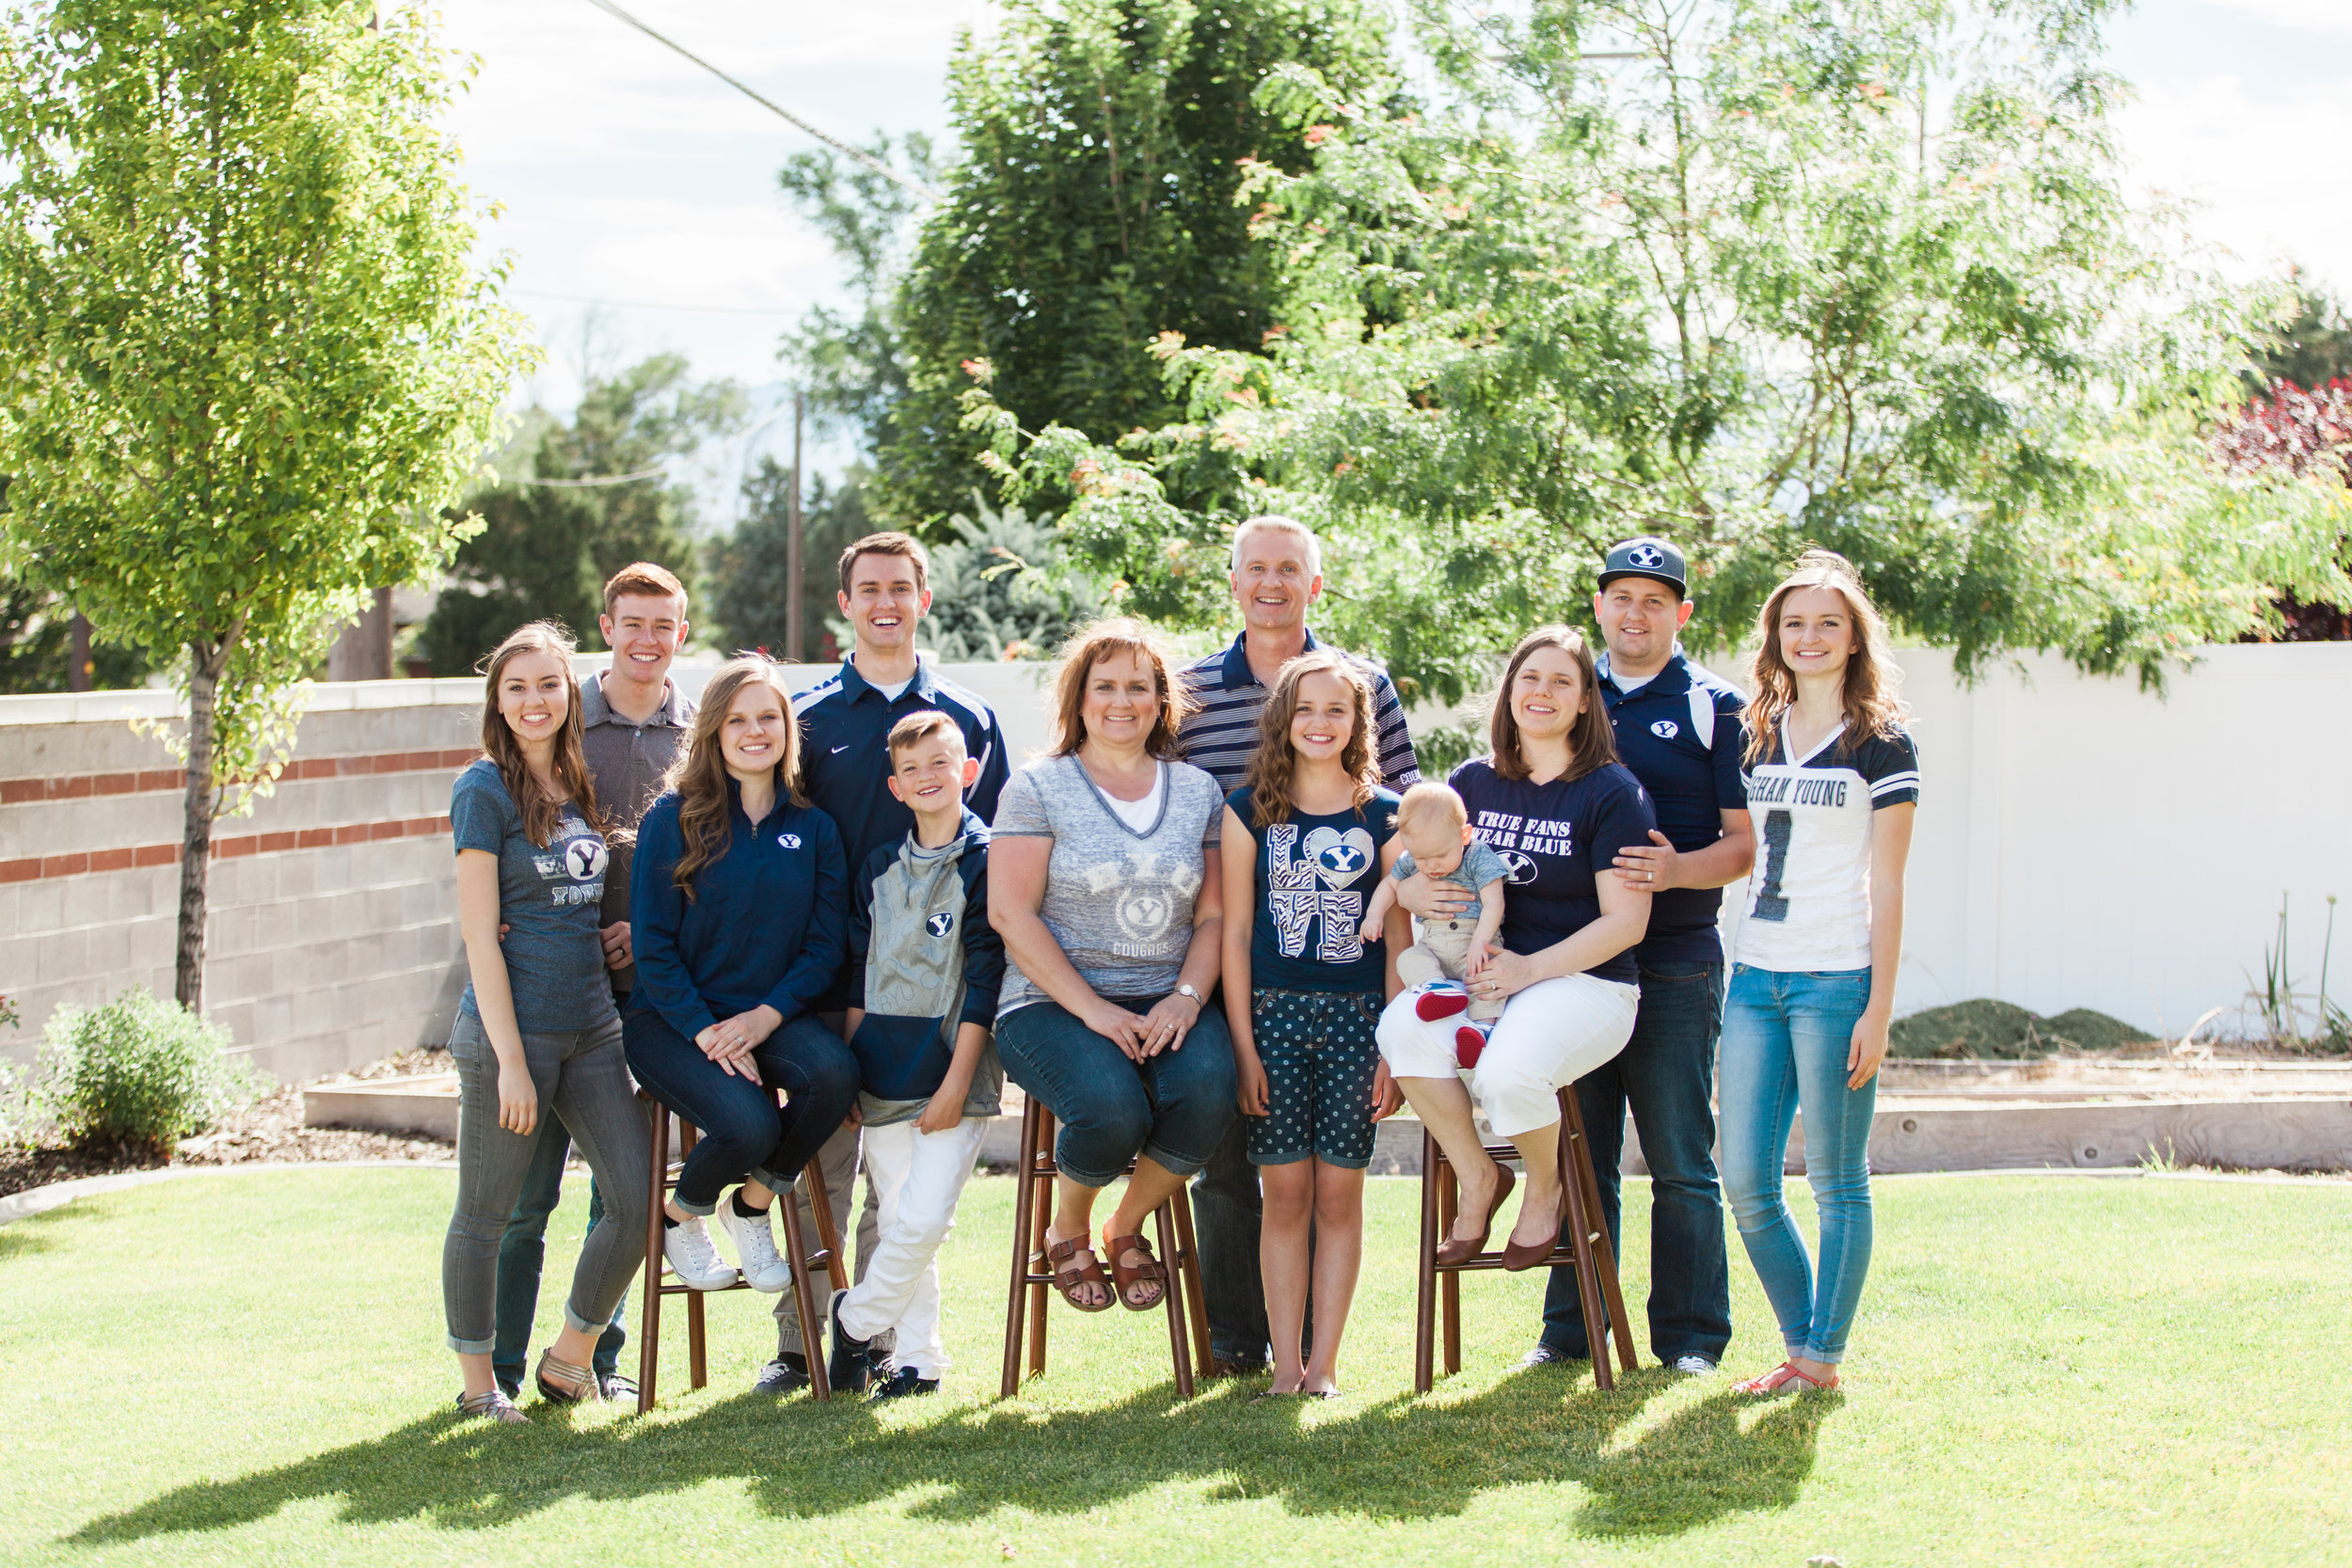 This adorable family LOVES BYU. So they all wore BYU gear and it was so perfect for them!